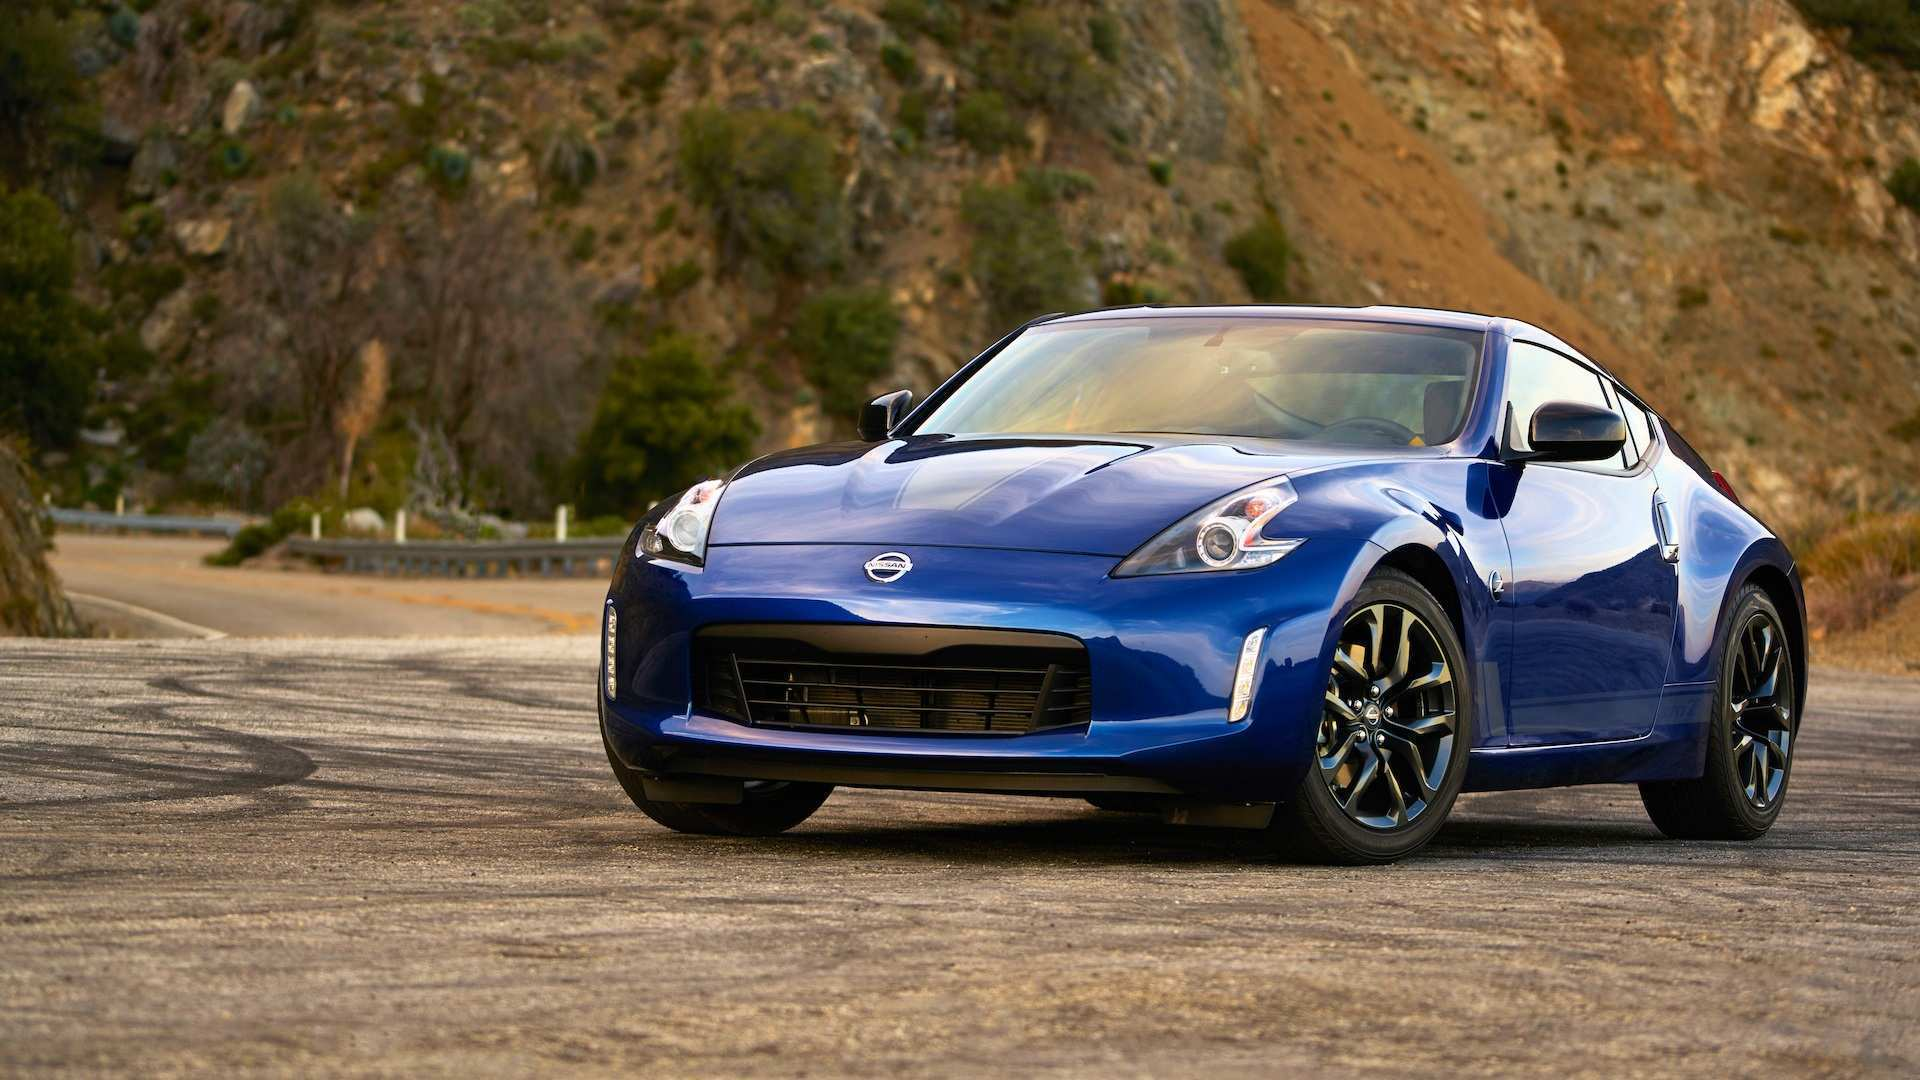 17 Great 2019 Nissan Z Spy Images with 2019 Nissan Z Spy